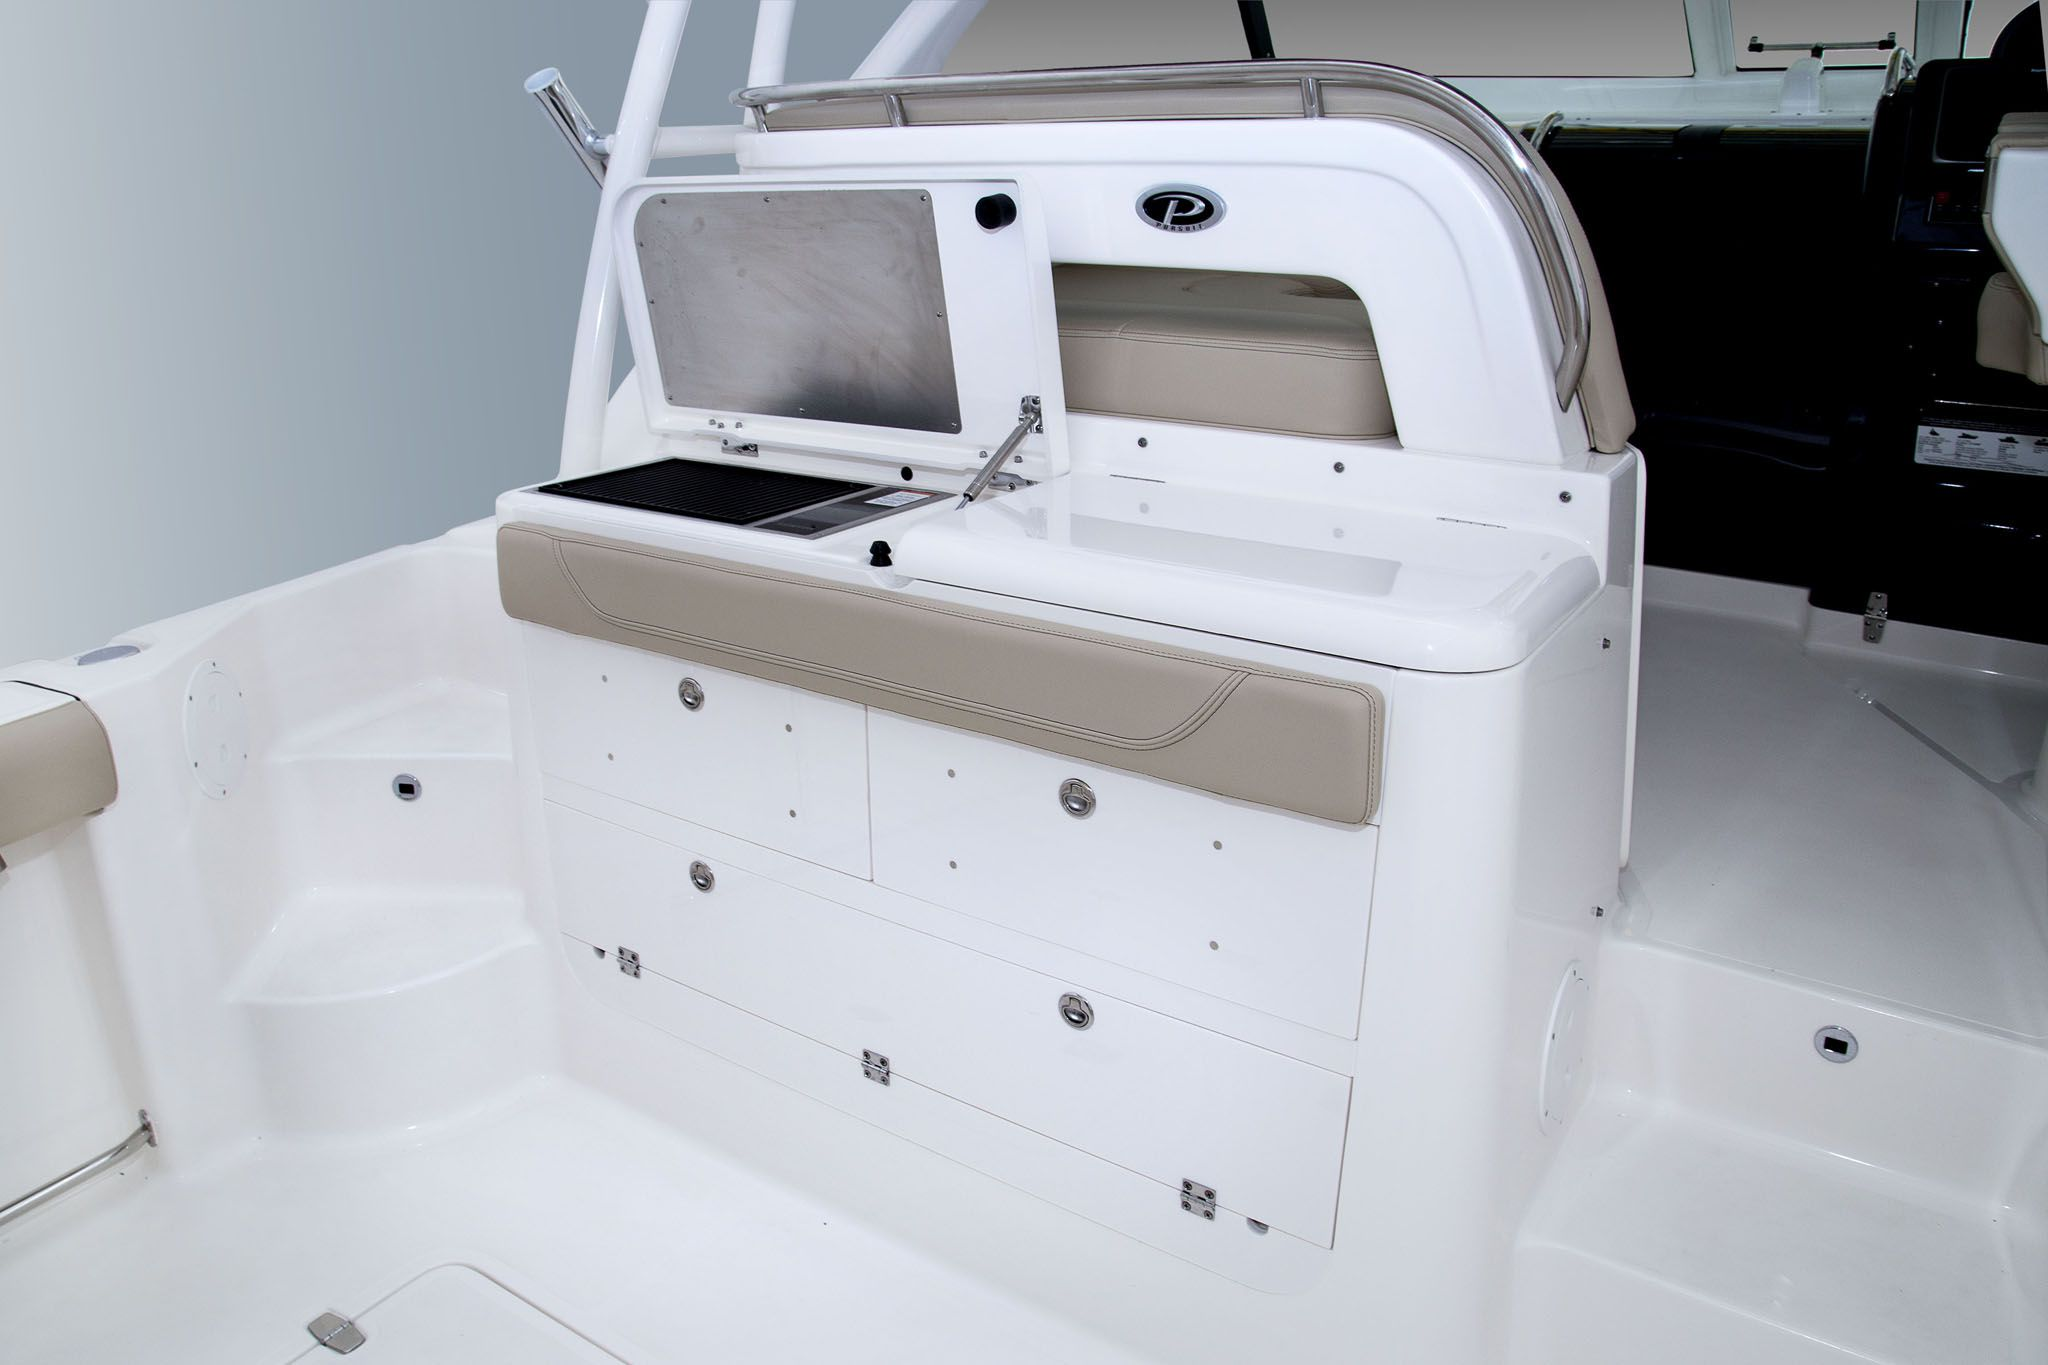 Pursuit 345 Offshort fishing boat for sale used